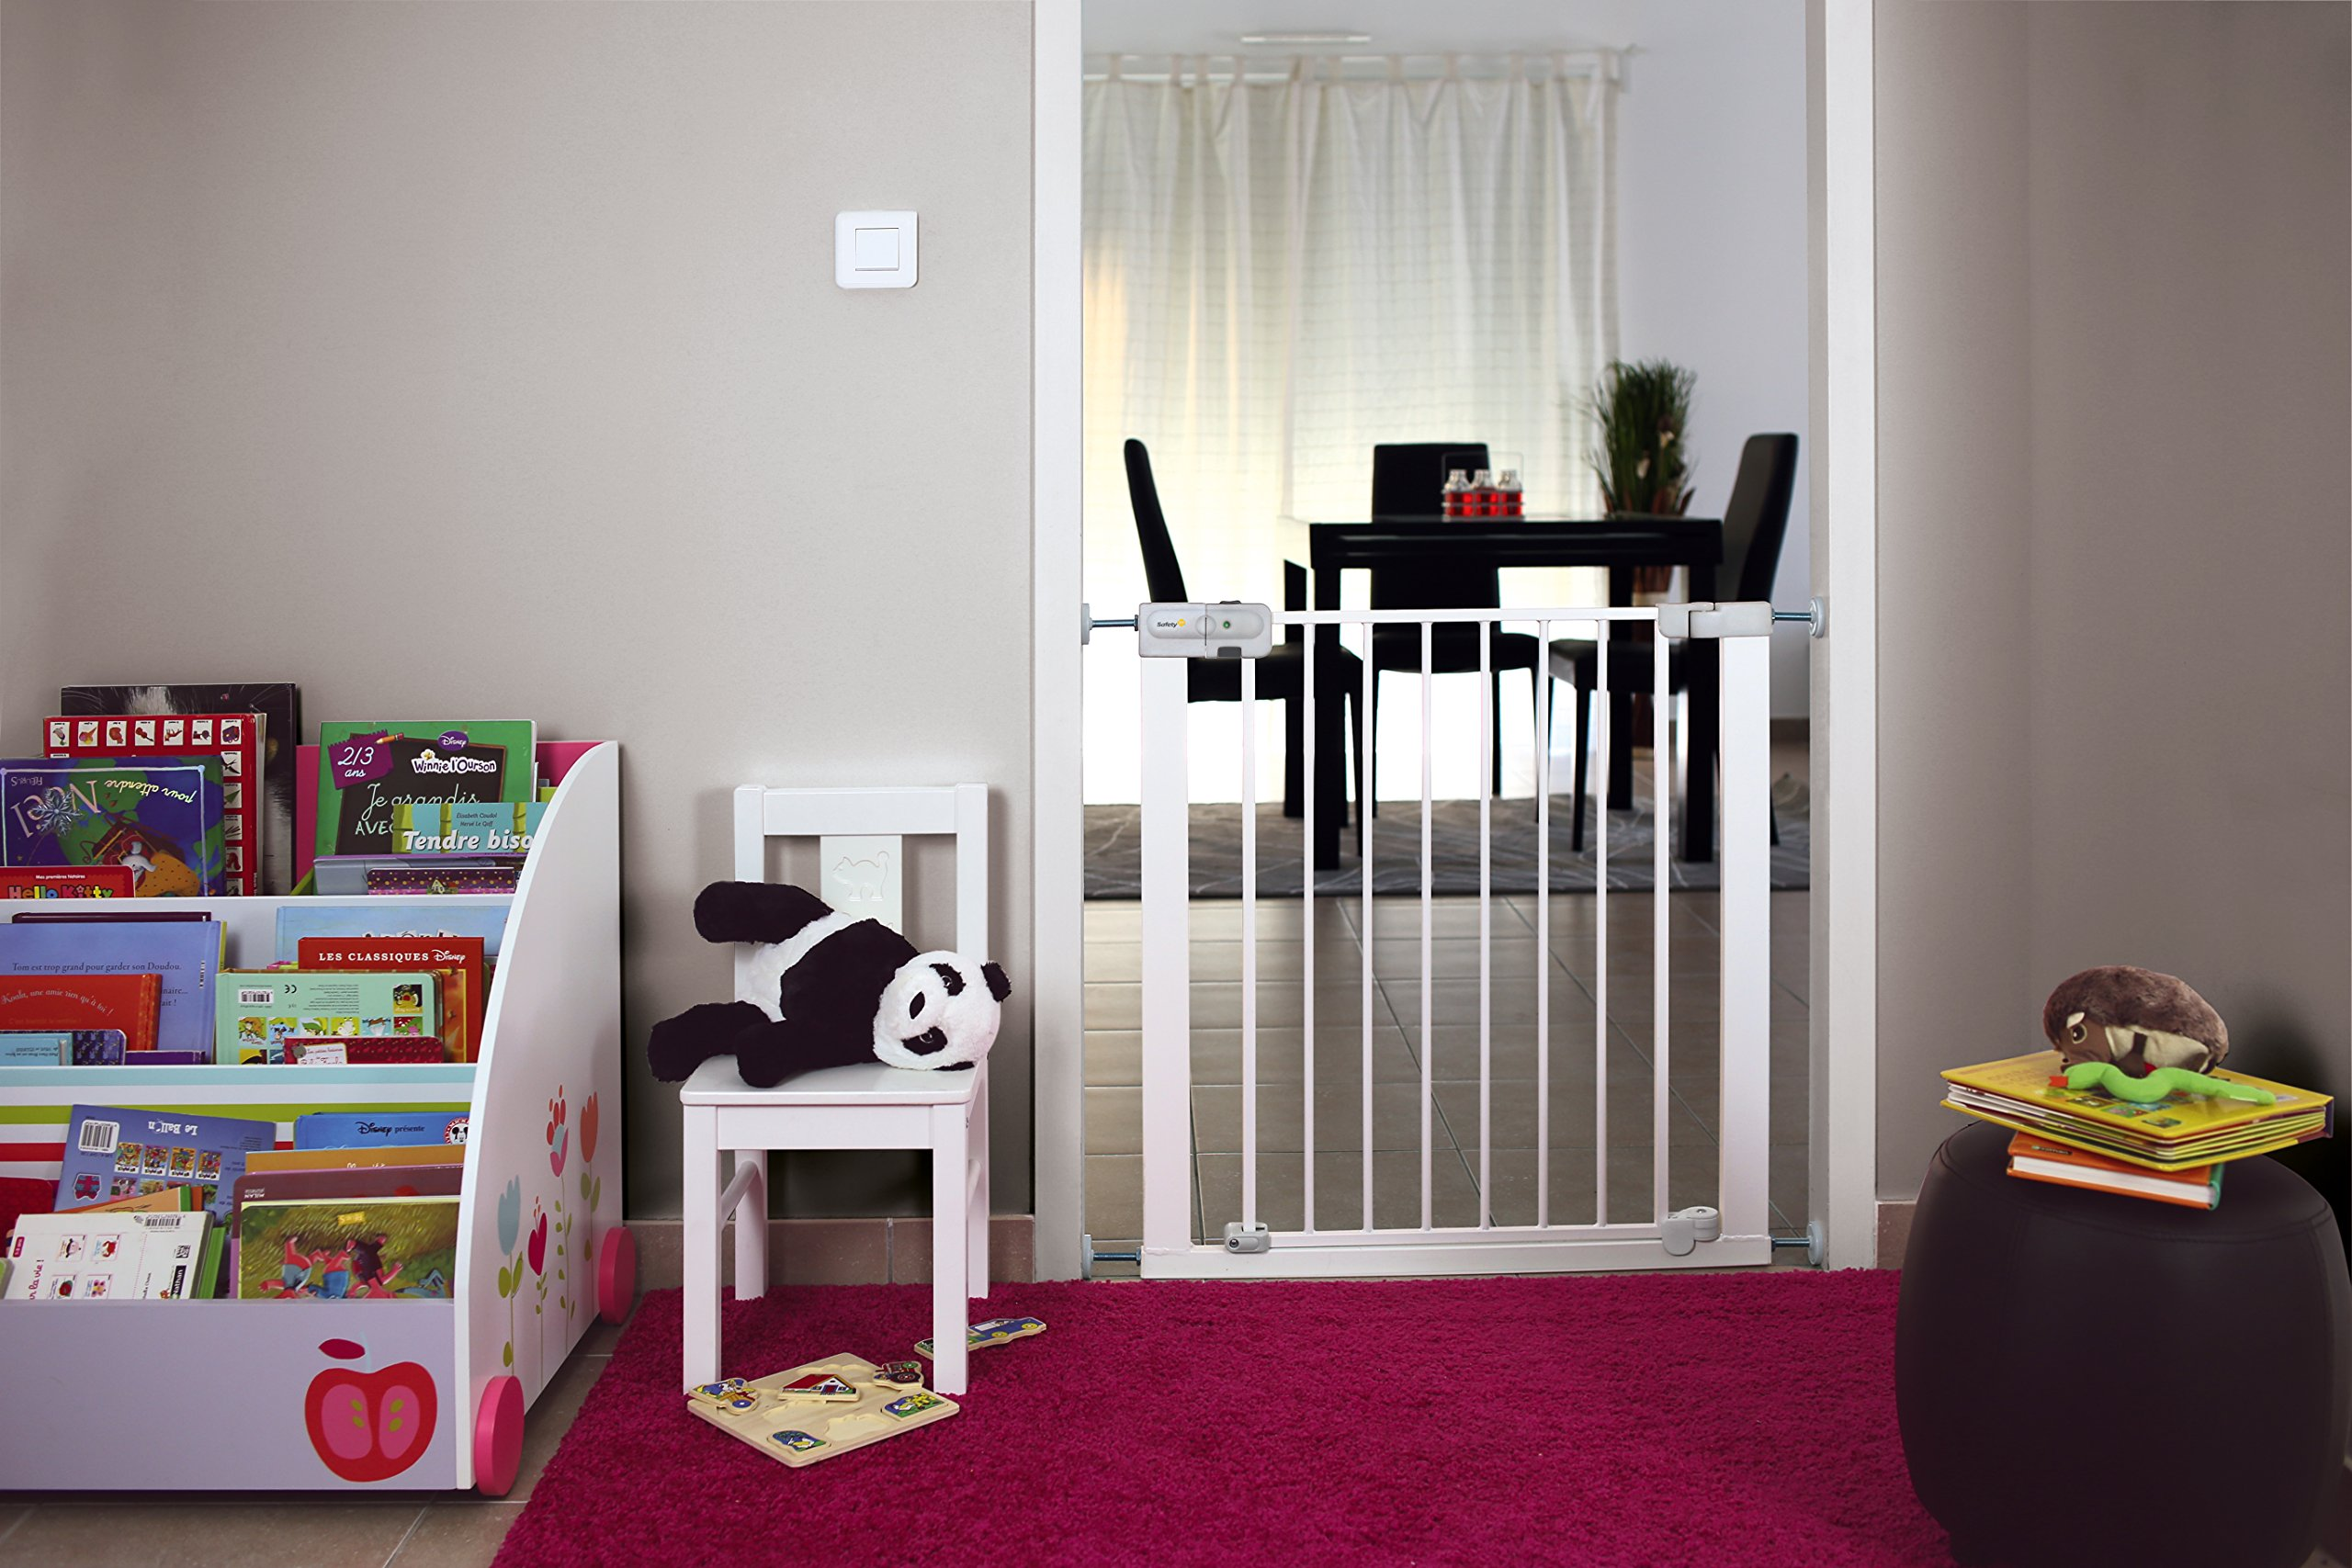 Safety 1st Securtech Auto Close Metal Gate, White  'True' Auto Close Gate which automatically closes for all opening angles Adjusts to fit openings from 73 cm to 80 cm Extends up to 136 cm with separately available extensions 6